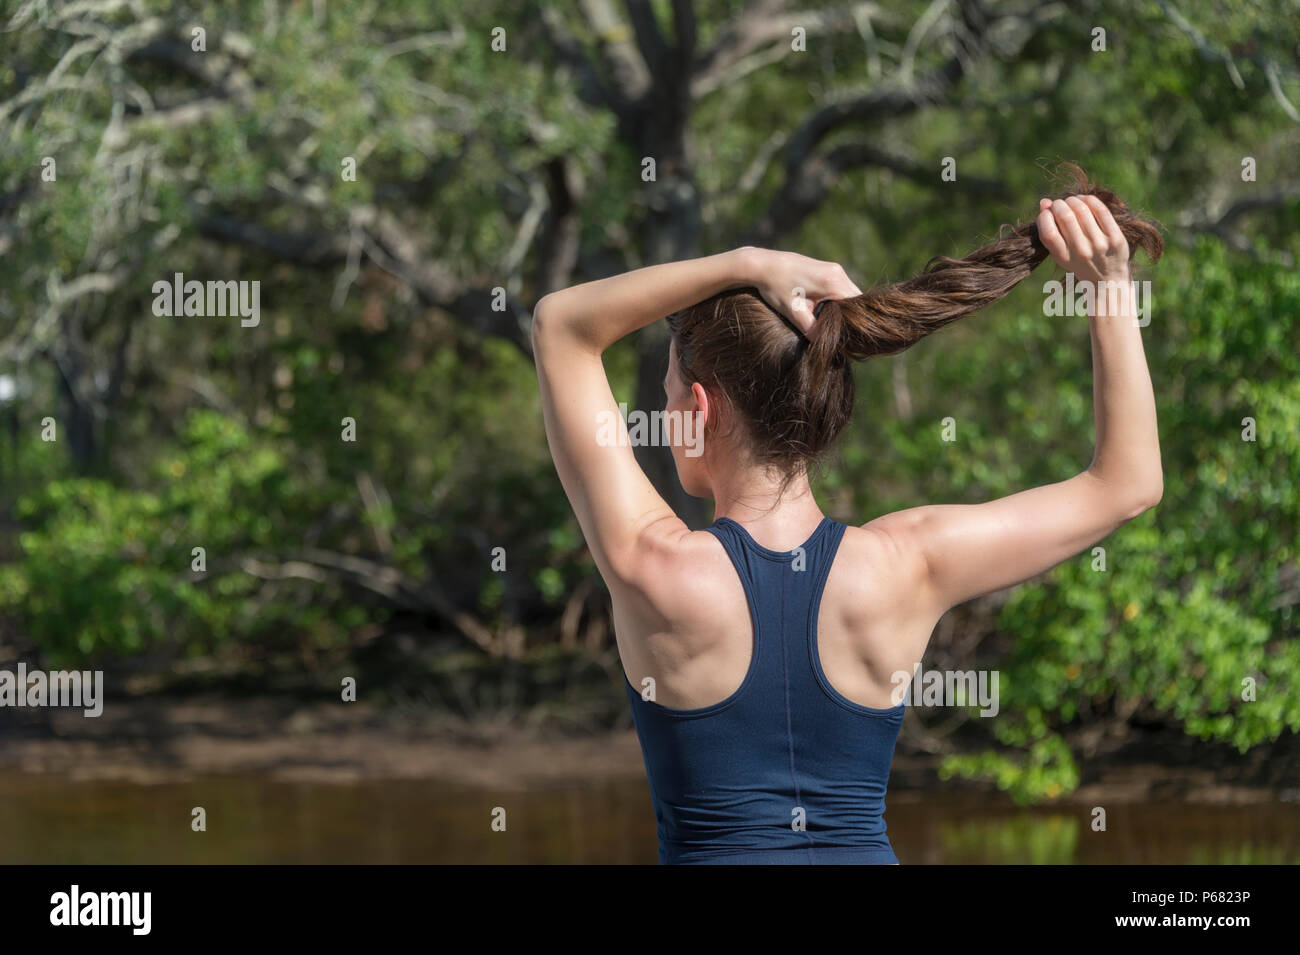 sportswoman tying her hair up before exercising outside - Stock Image